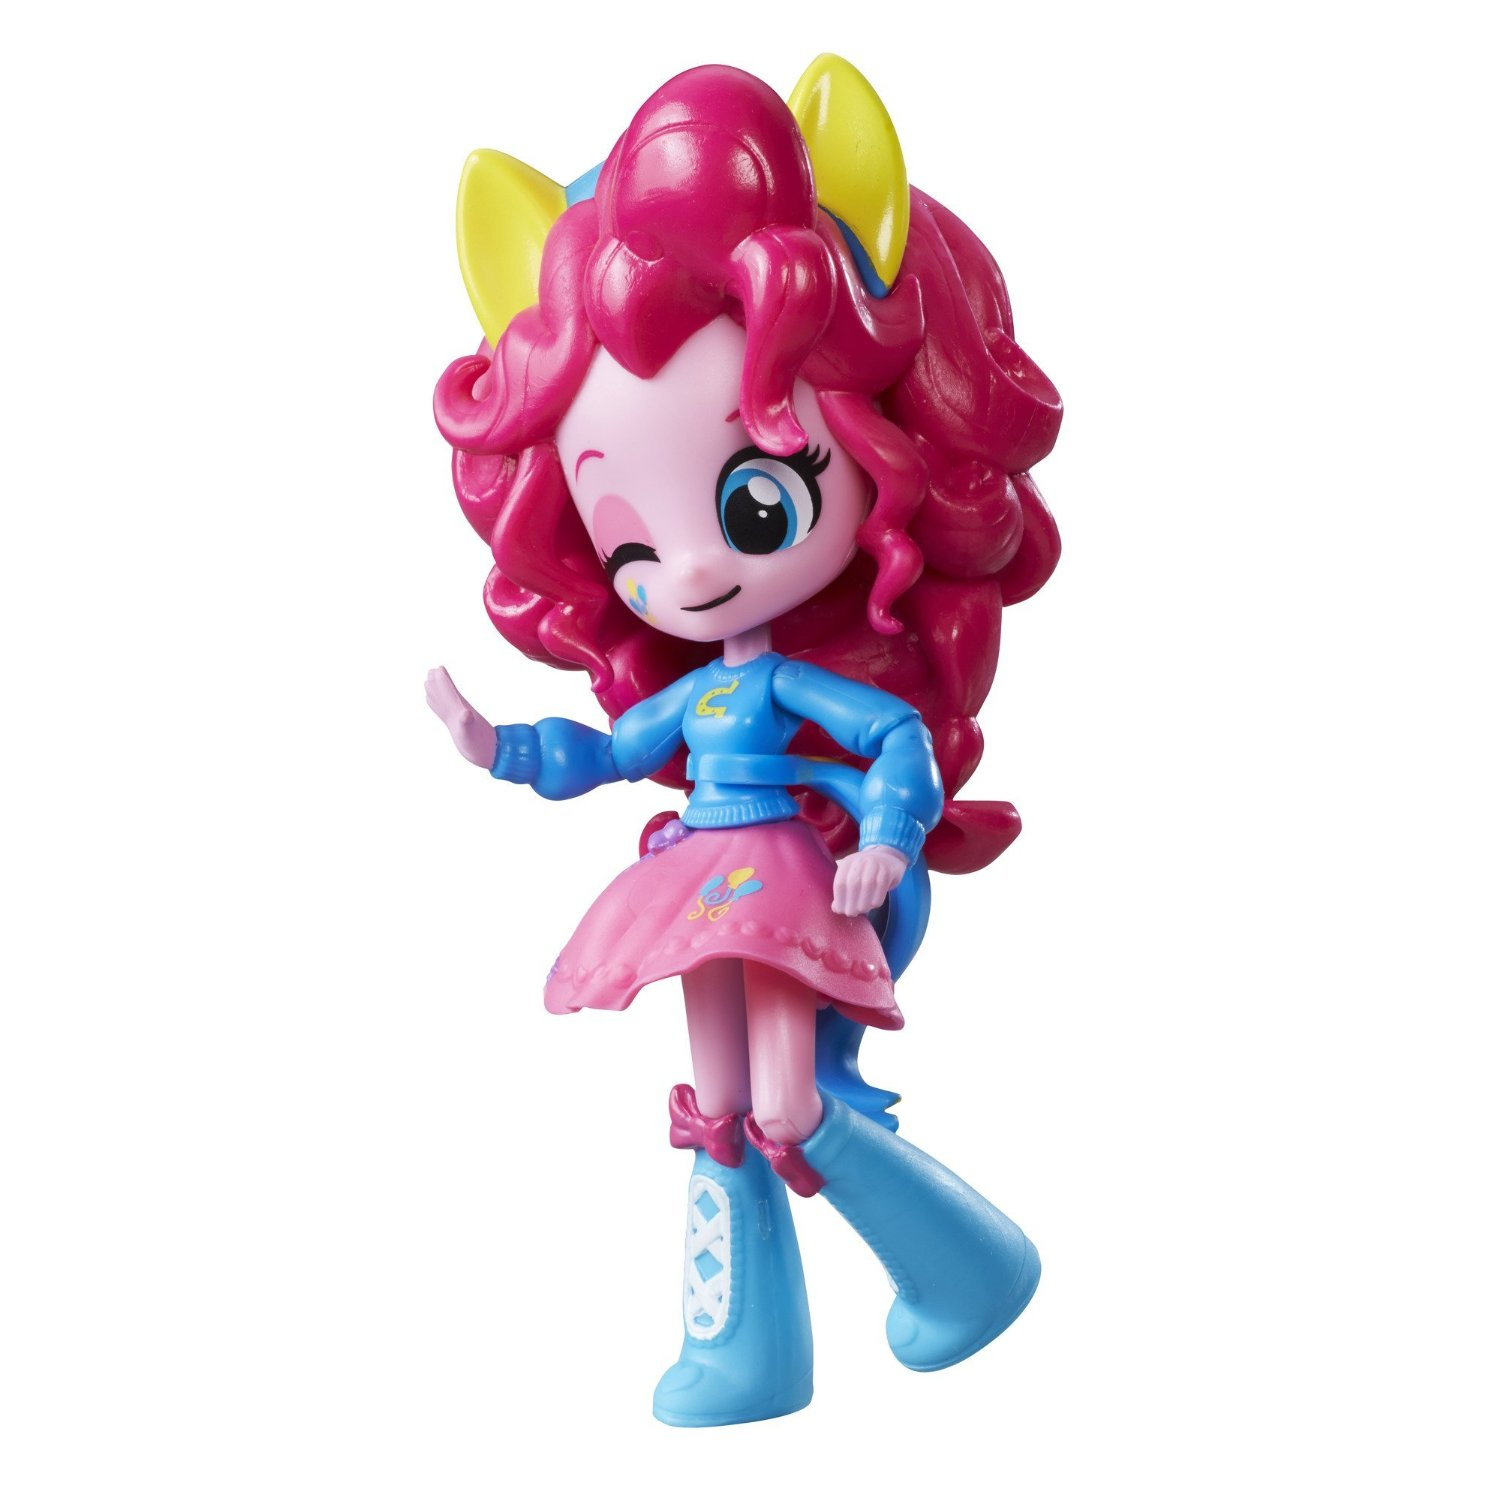 My Little Pony Equestria Girls new 2018 dolls collections